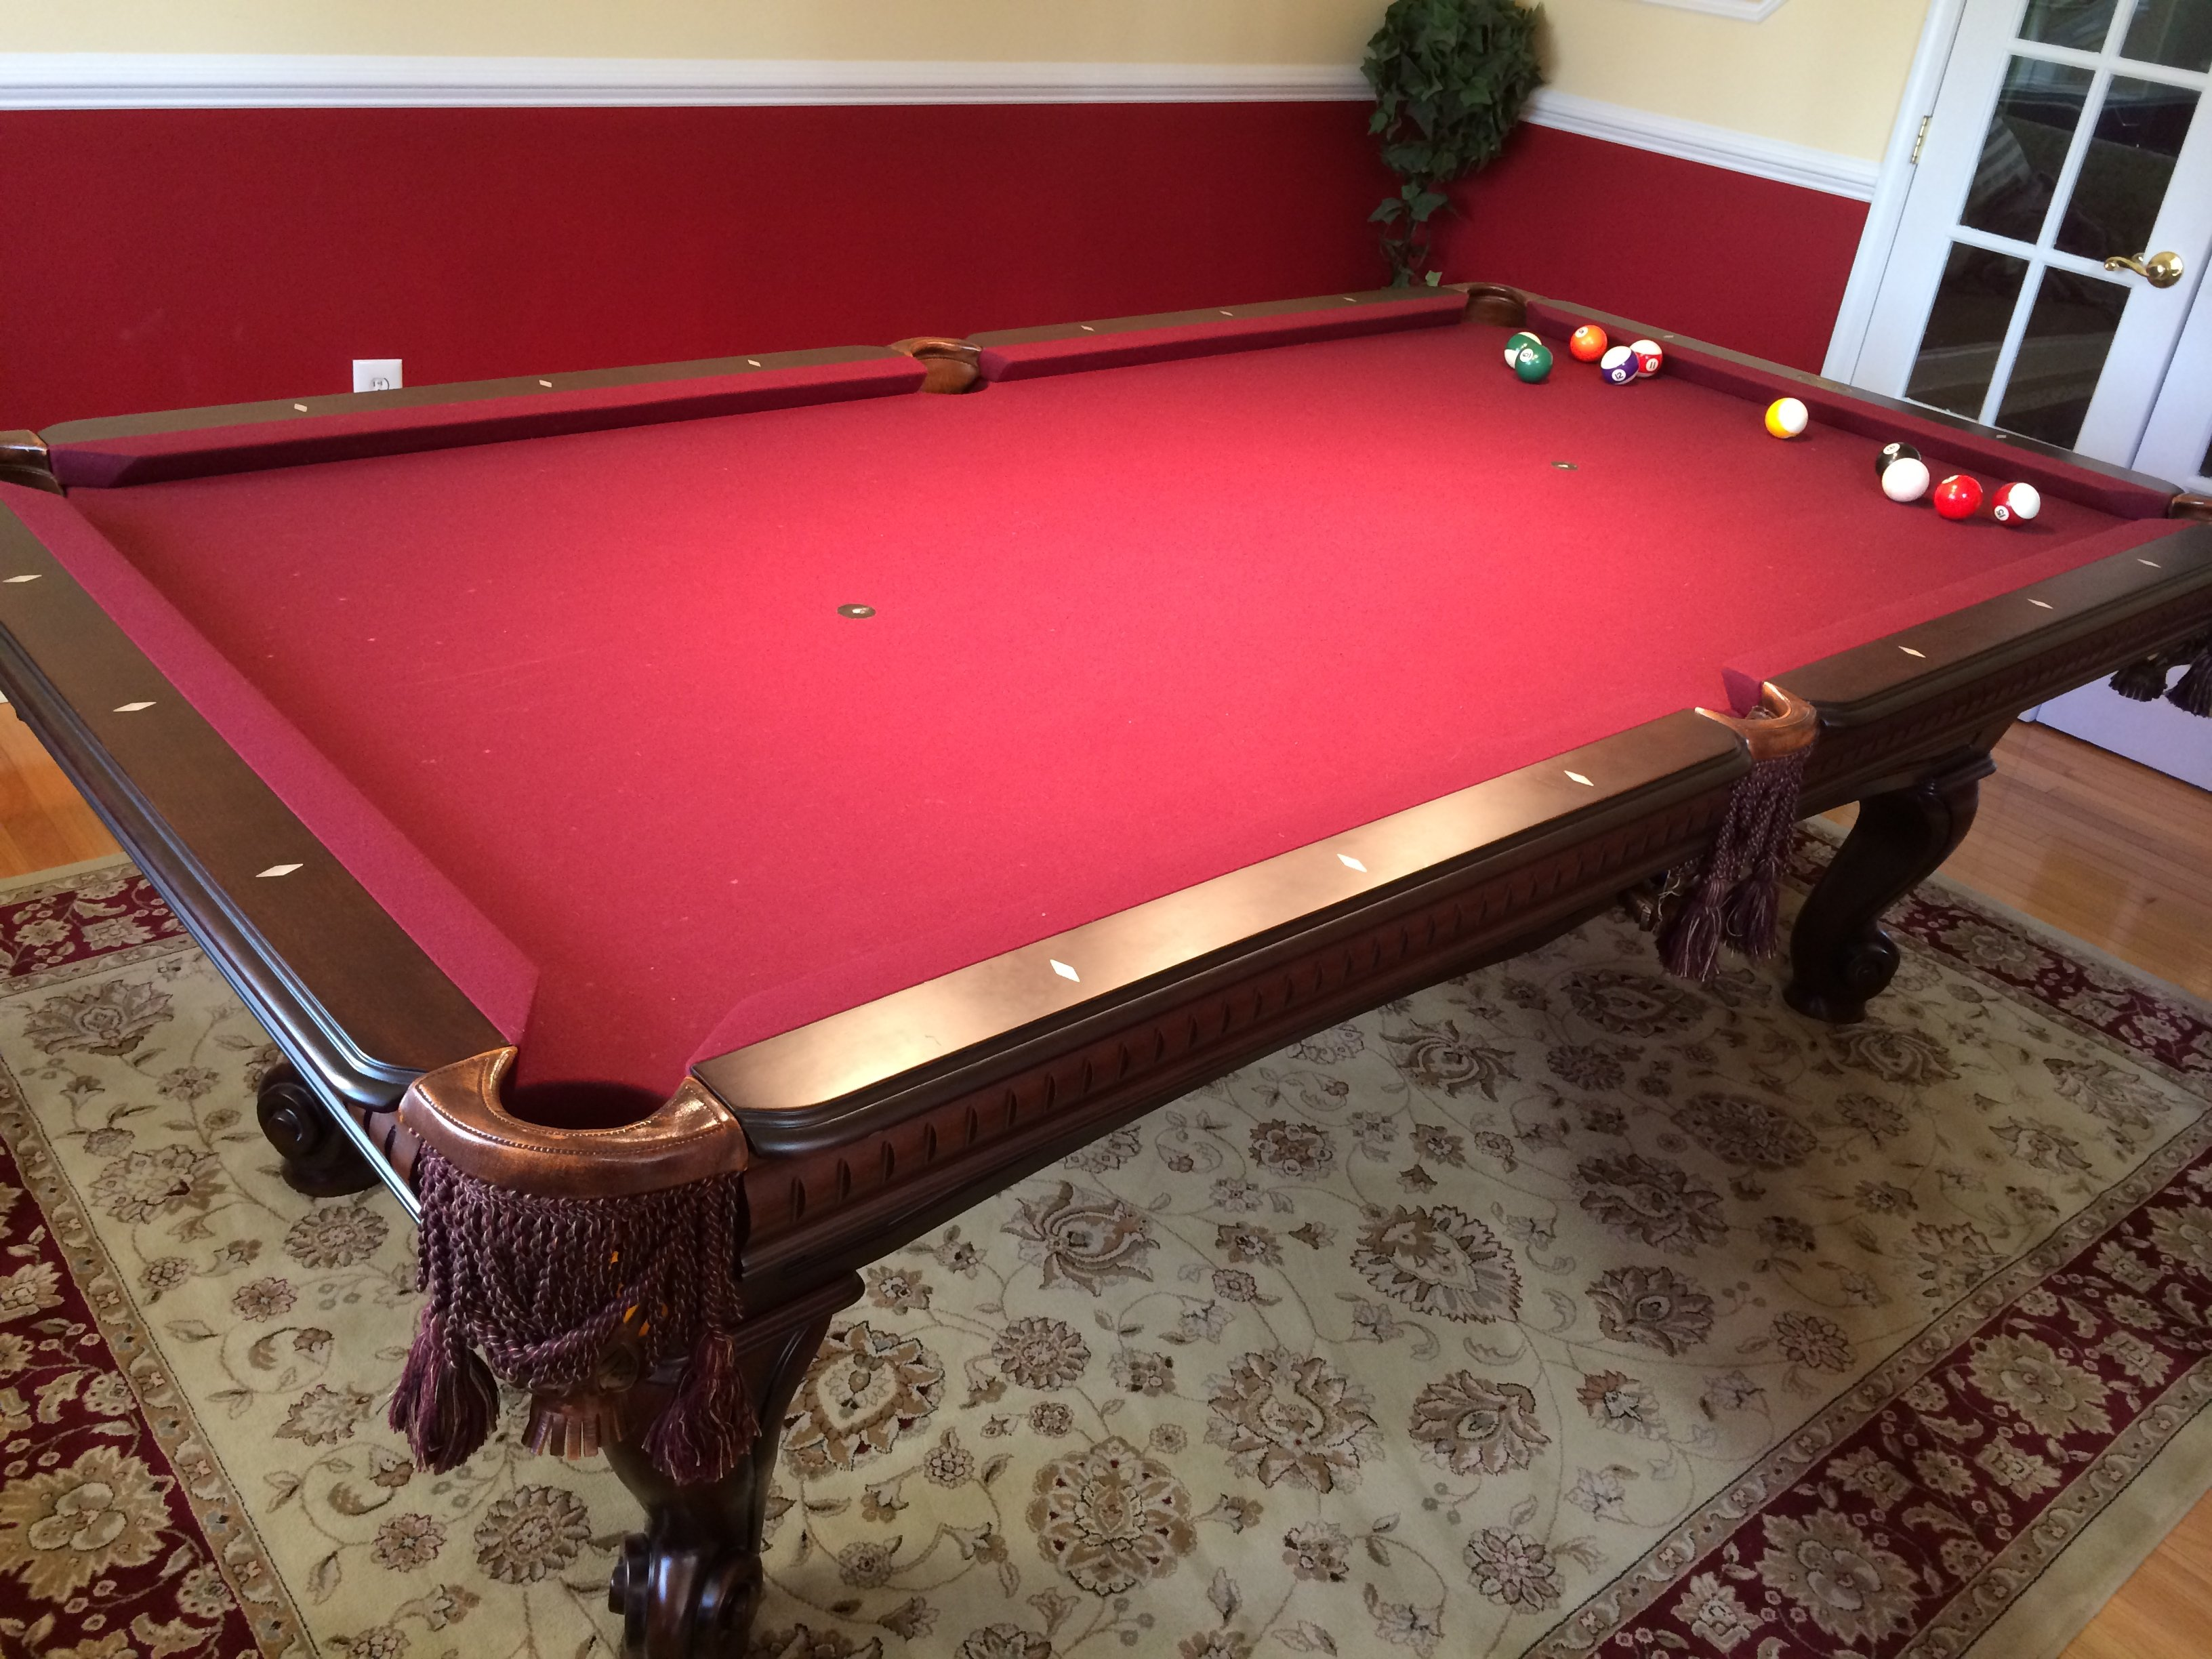 Used pool tables for sale | AK Pool Tables